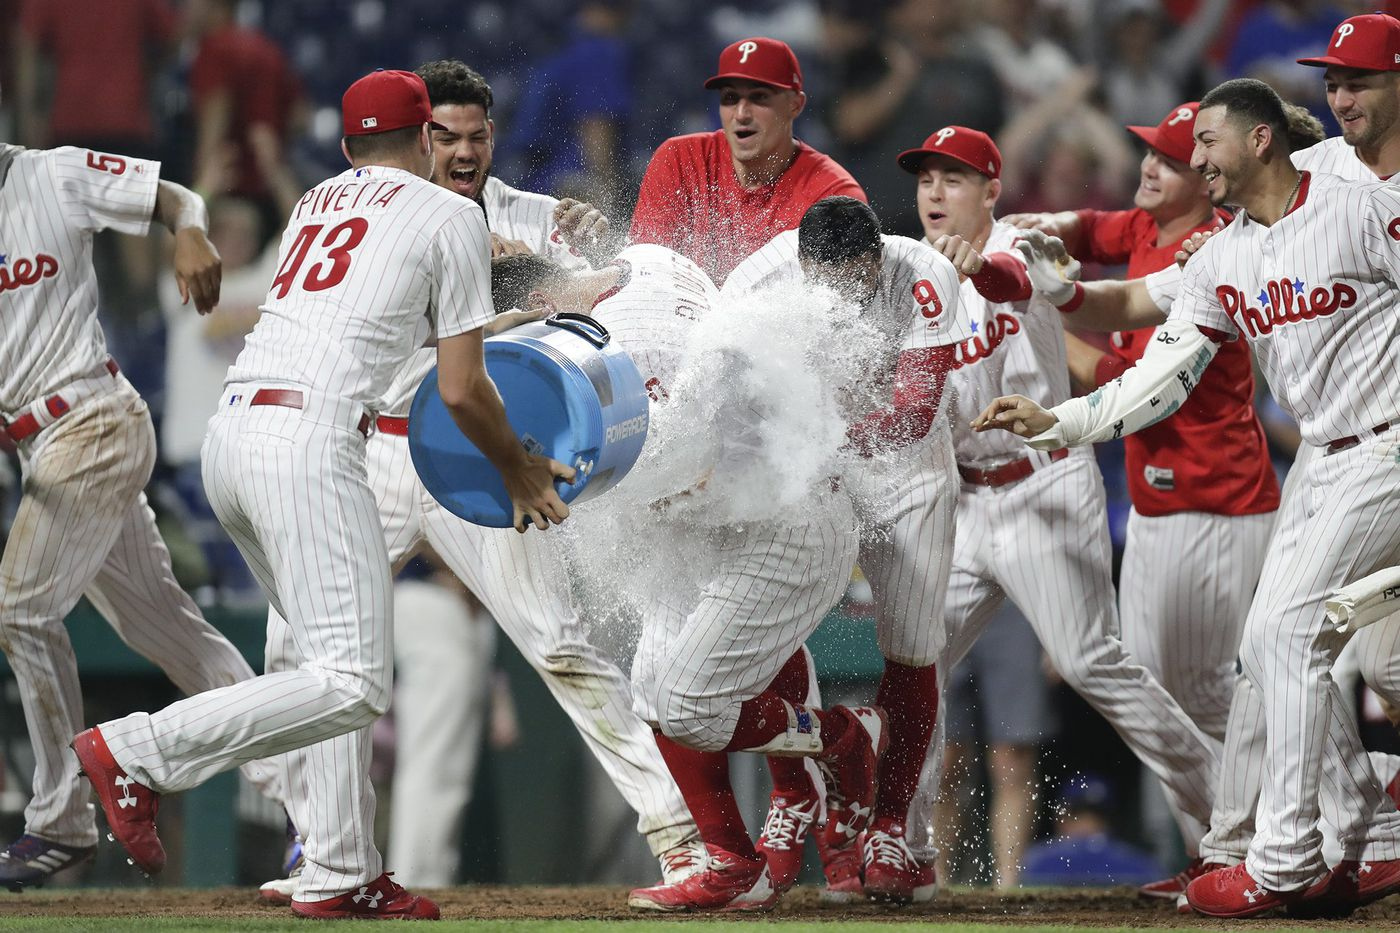 Phillies beat Dodgers in 16-inning game lasting nearly six hours